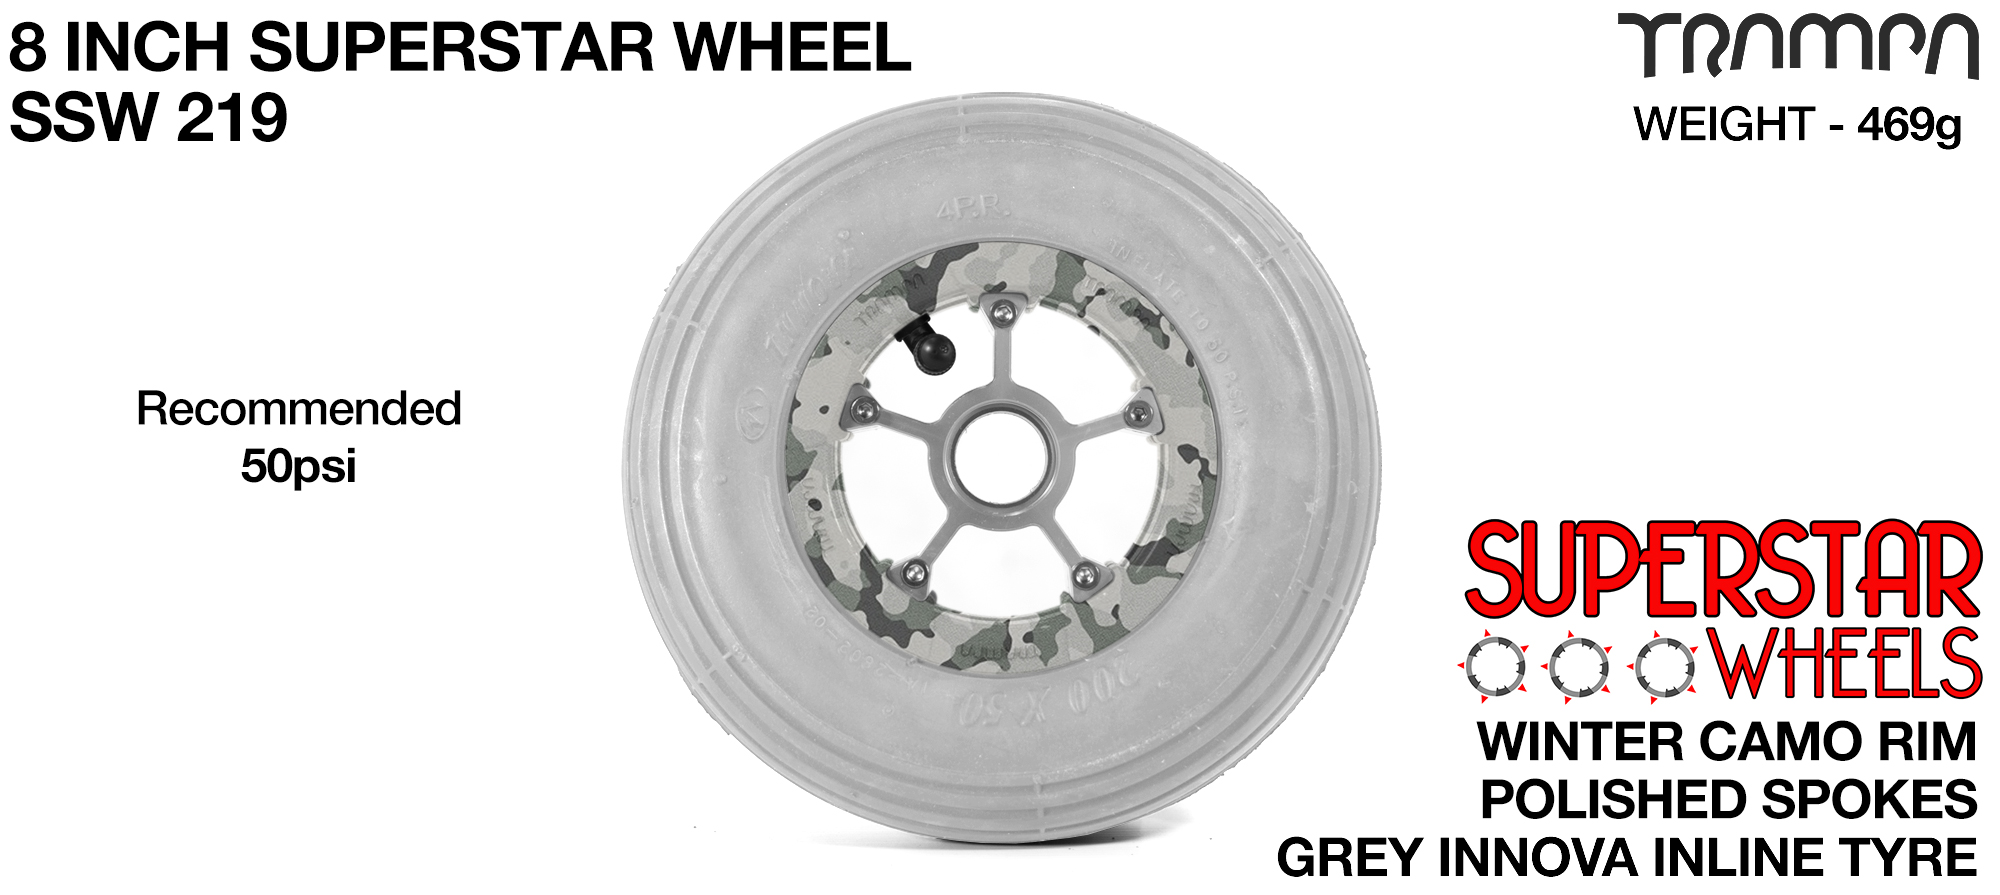 8 Inch Wheel - Winter Camo Superstar Rim Silver Anodised Spokes & Grey 8 Inch Inline Tyre